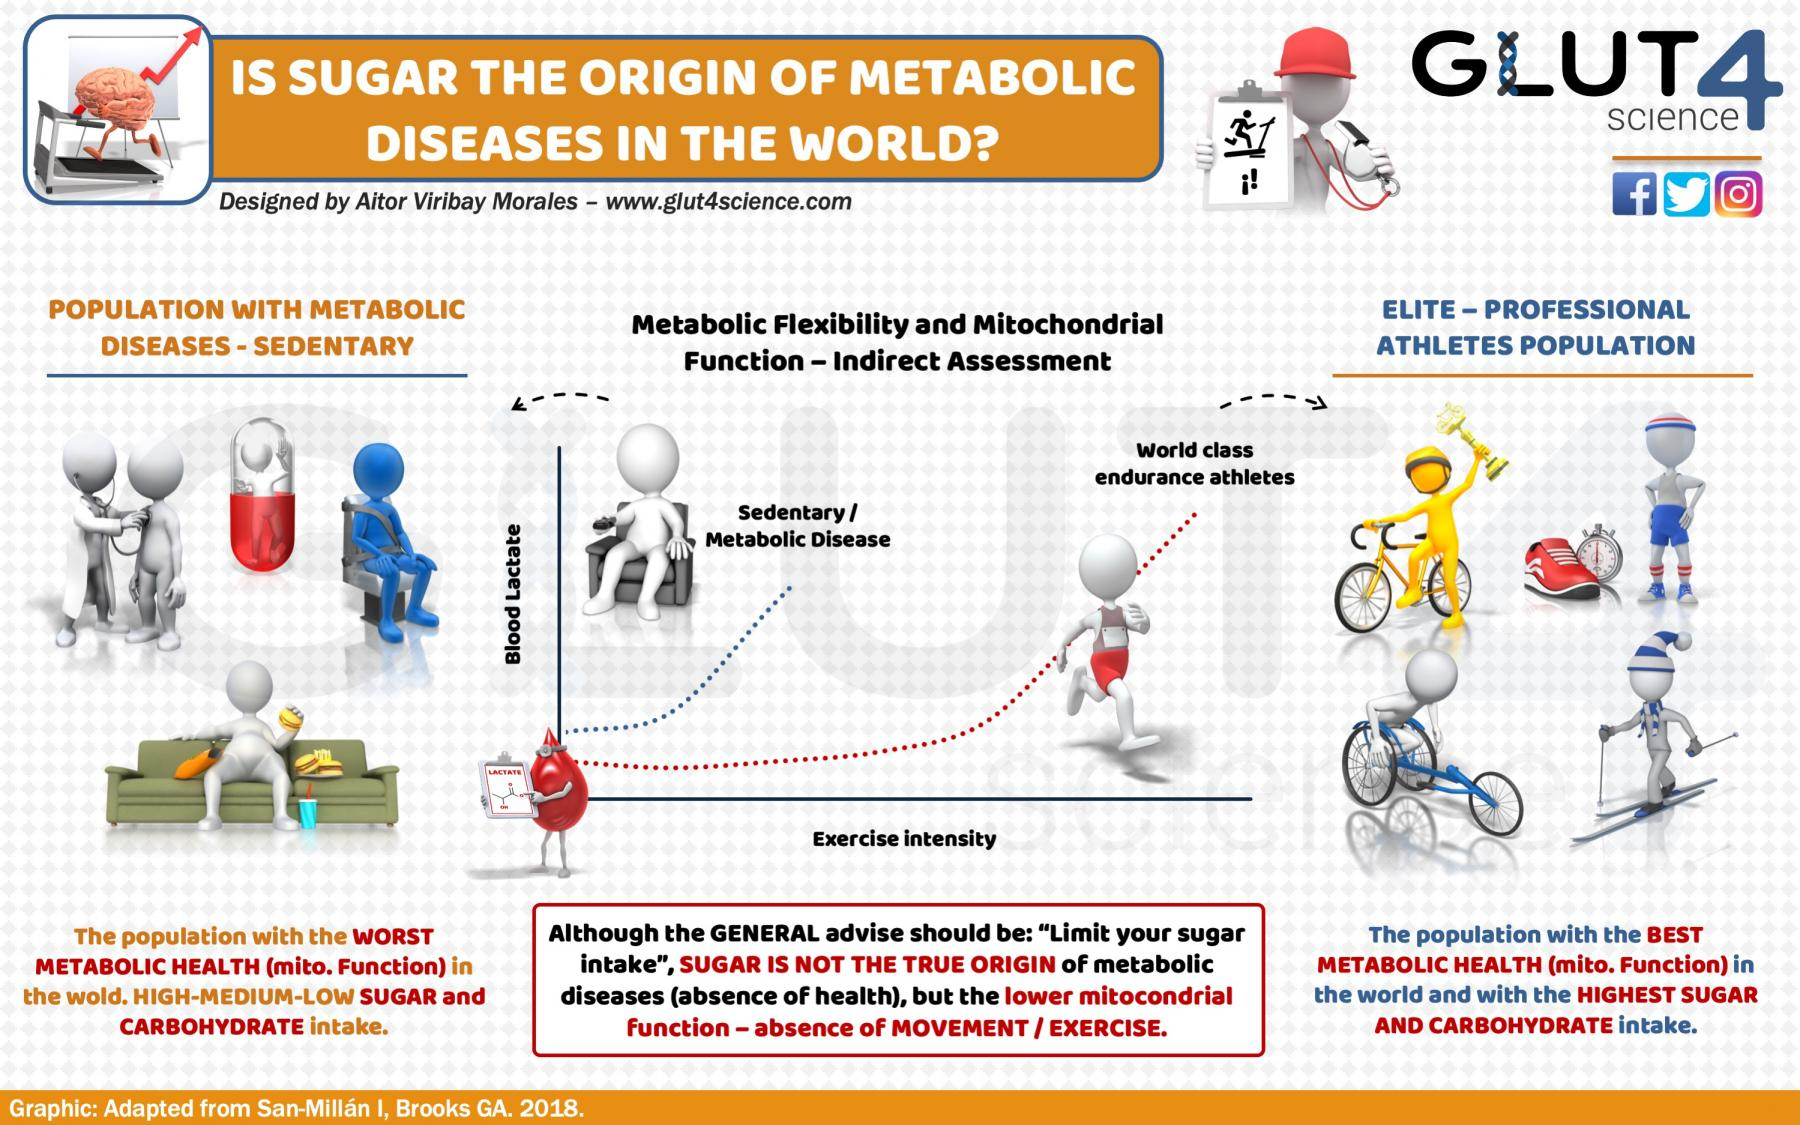 Is Sugar the Origin of Metabolic Diseases